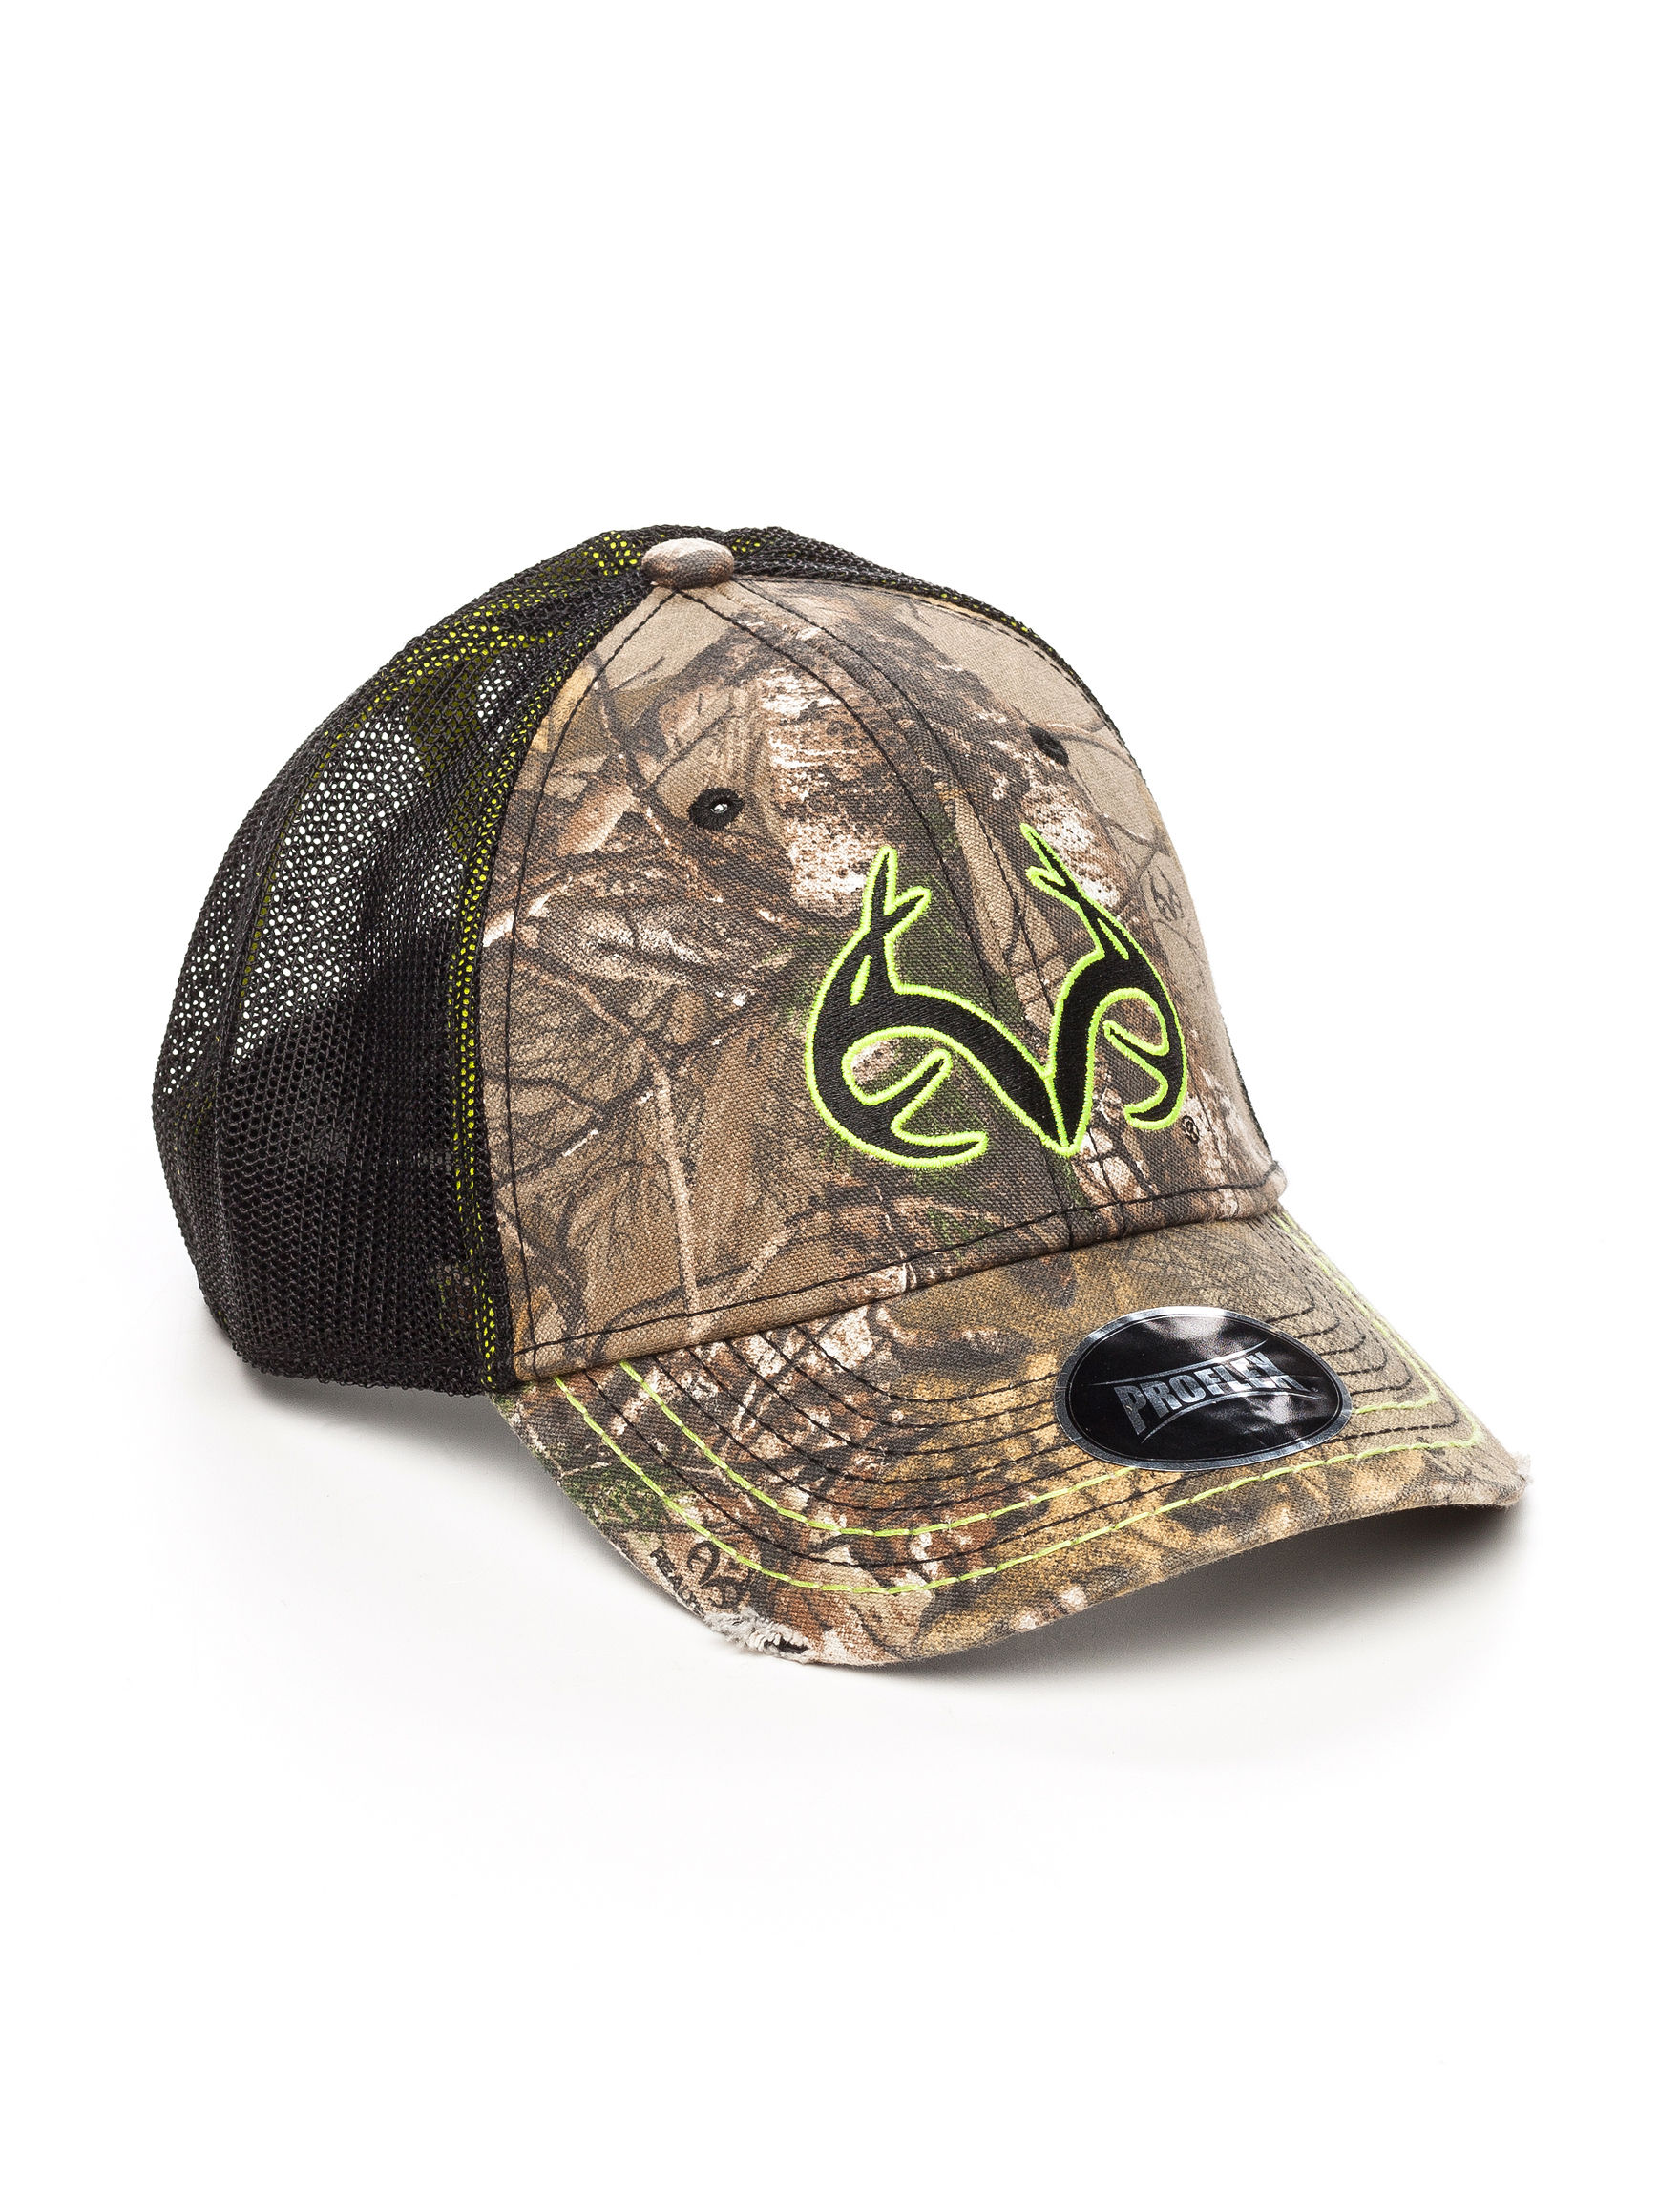 Realtree White / Silver Hats & Headwear